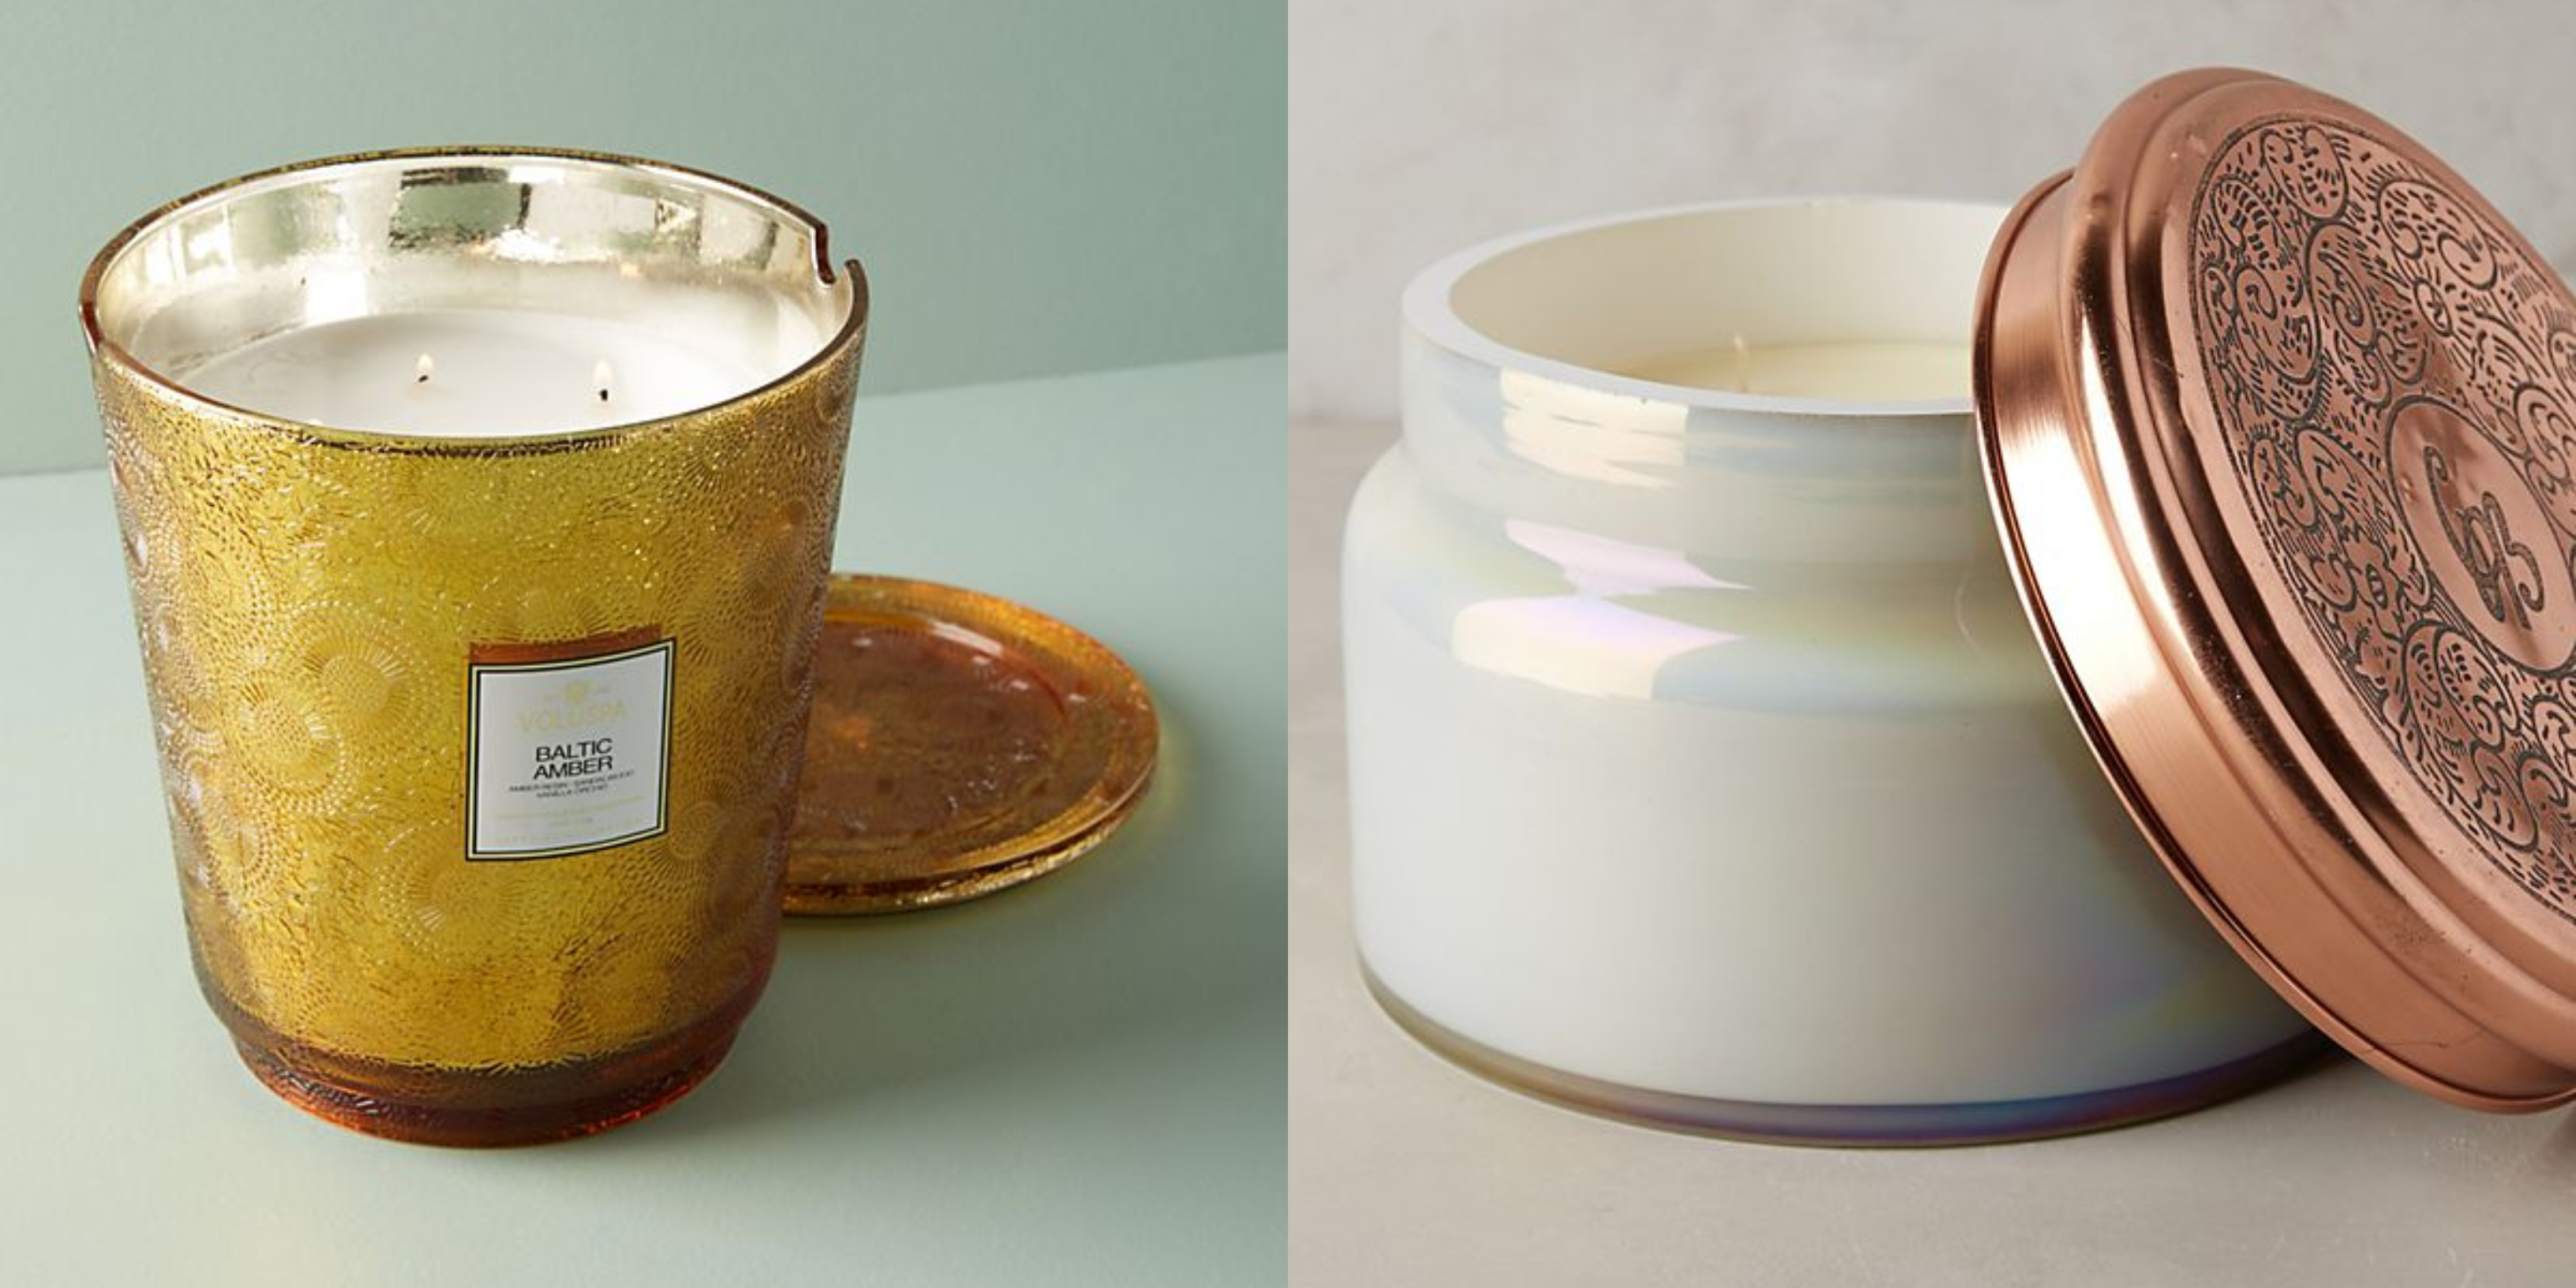 8 Giant Luxury Candles You Need to See to Believe